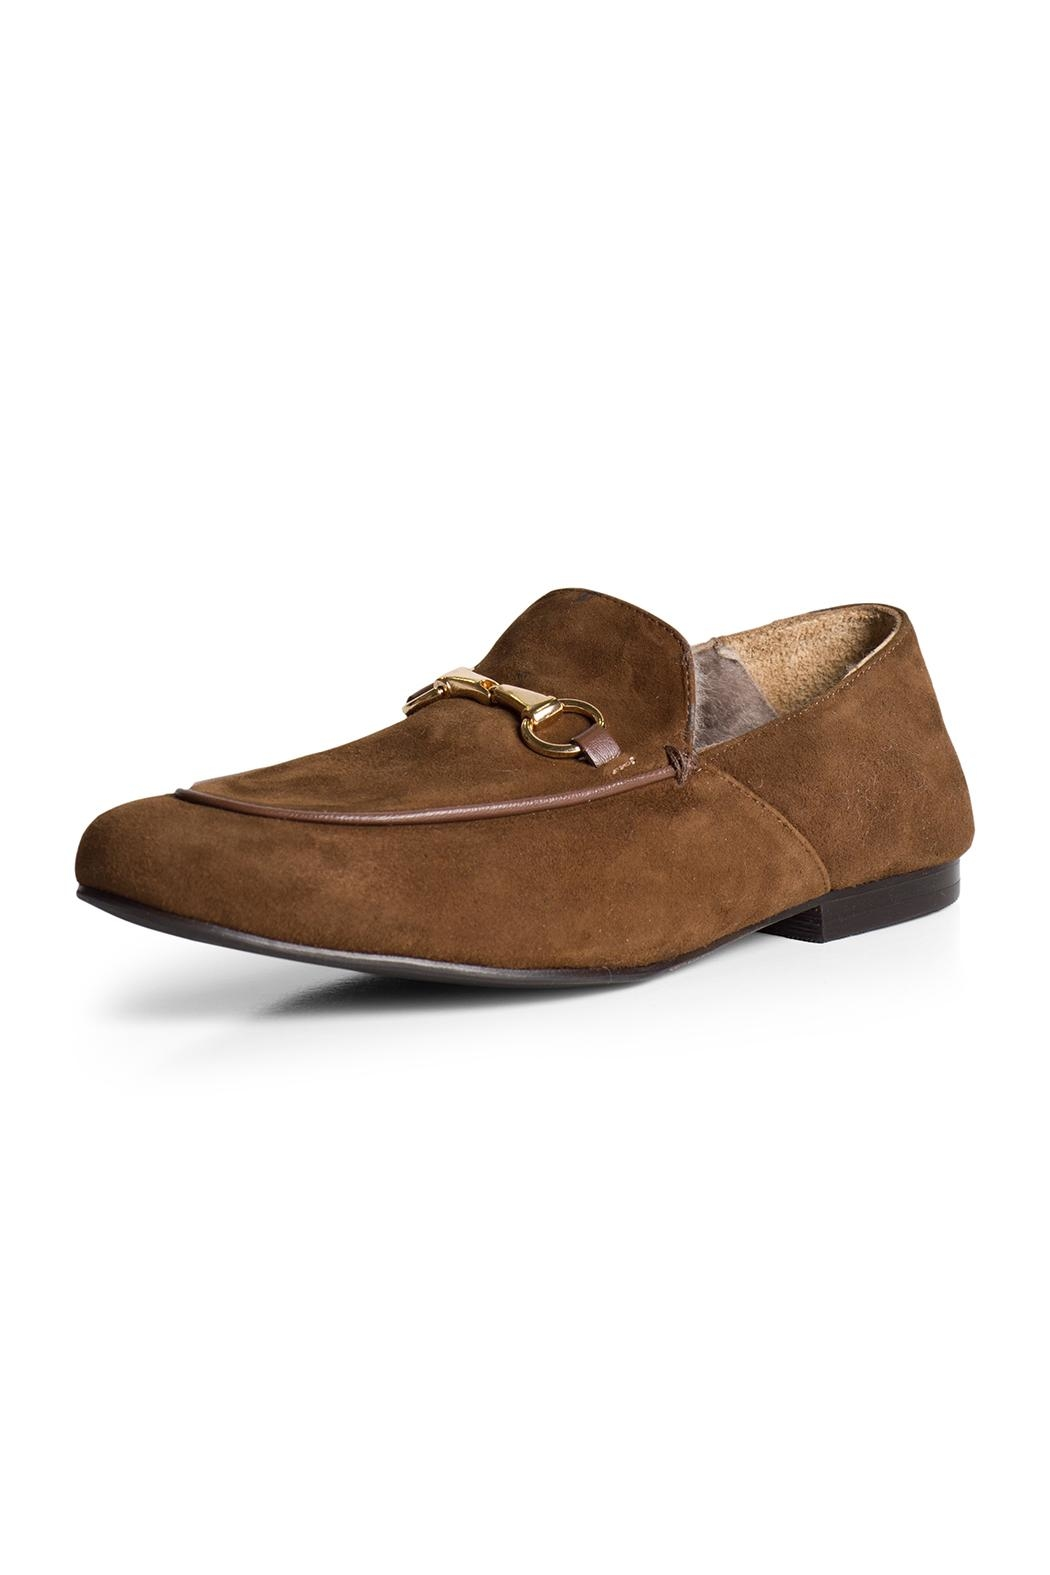 Pascucci Suede Wool-Lined Loafer - Front Full Image